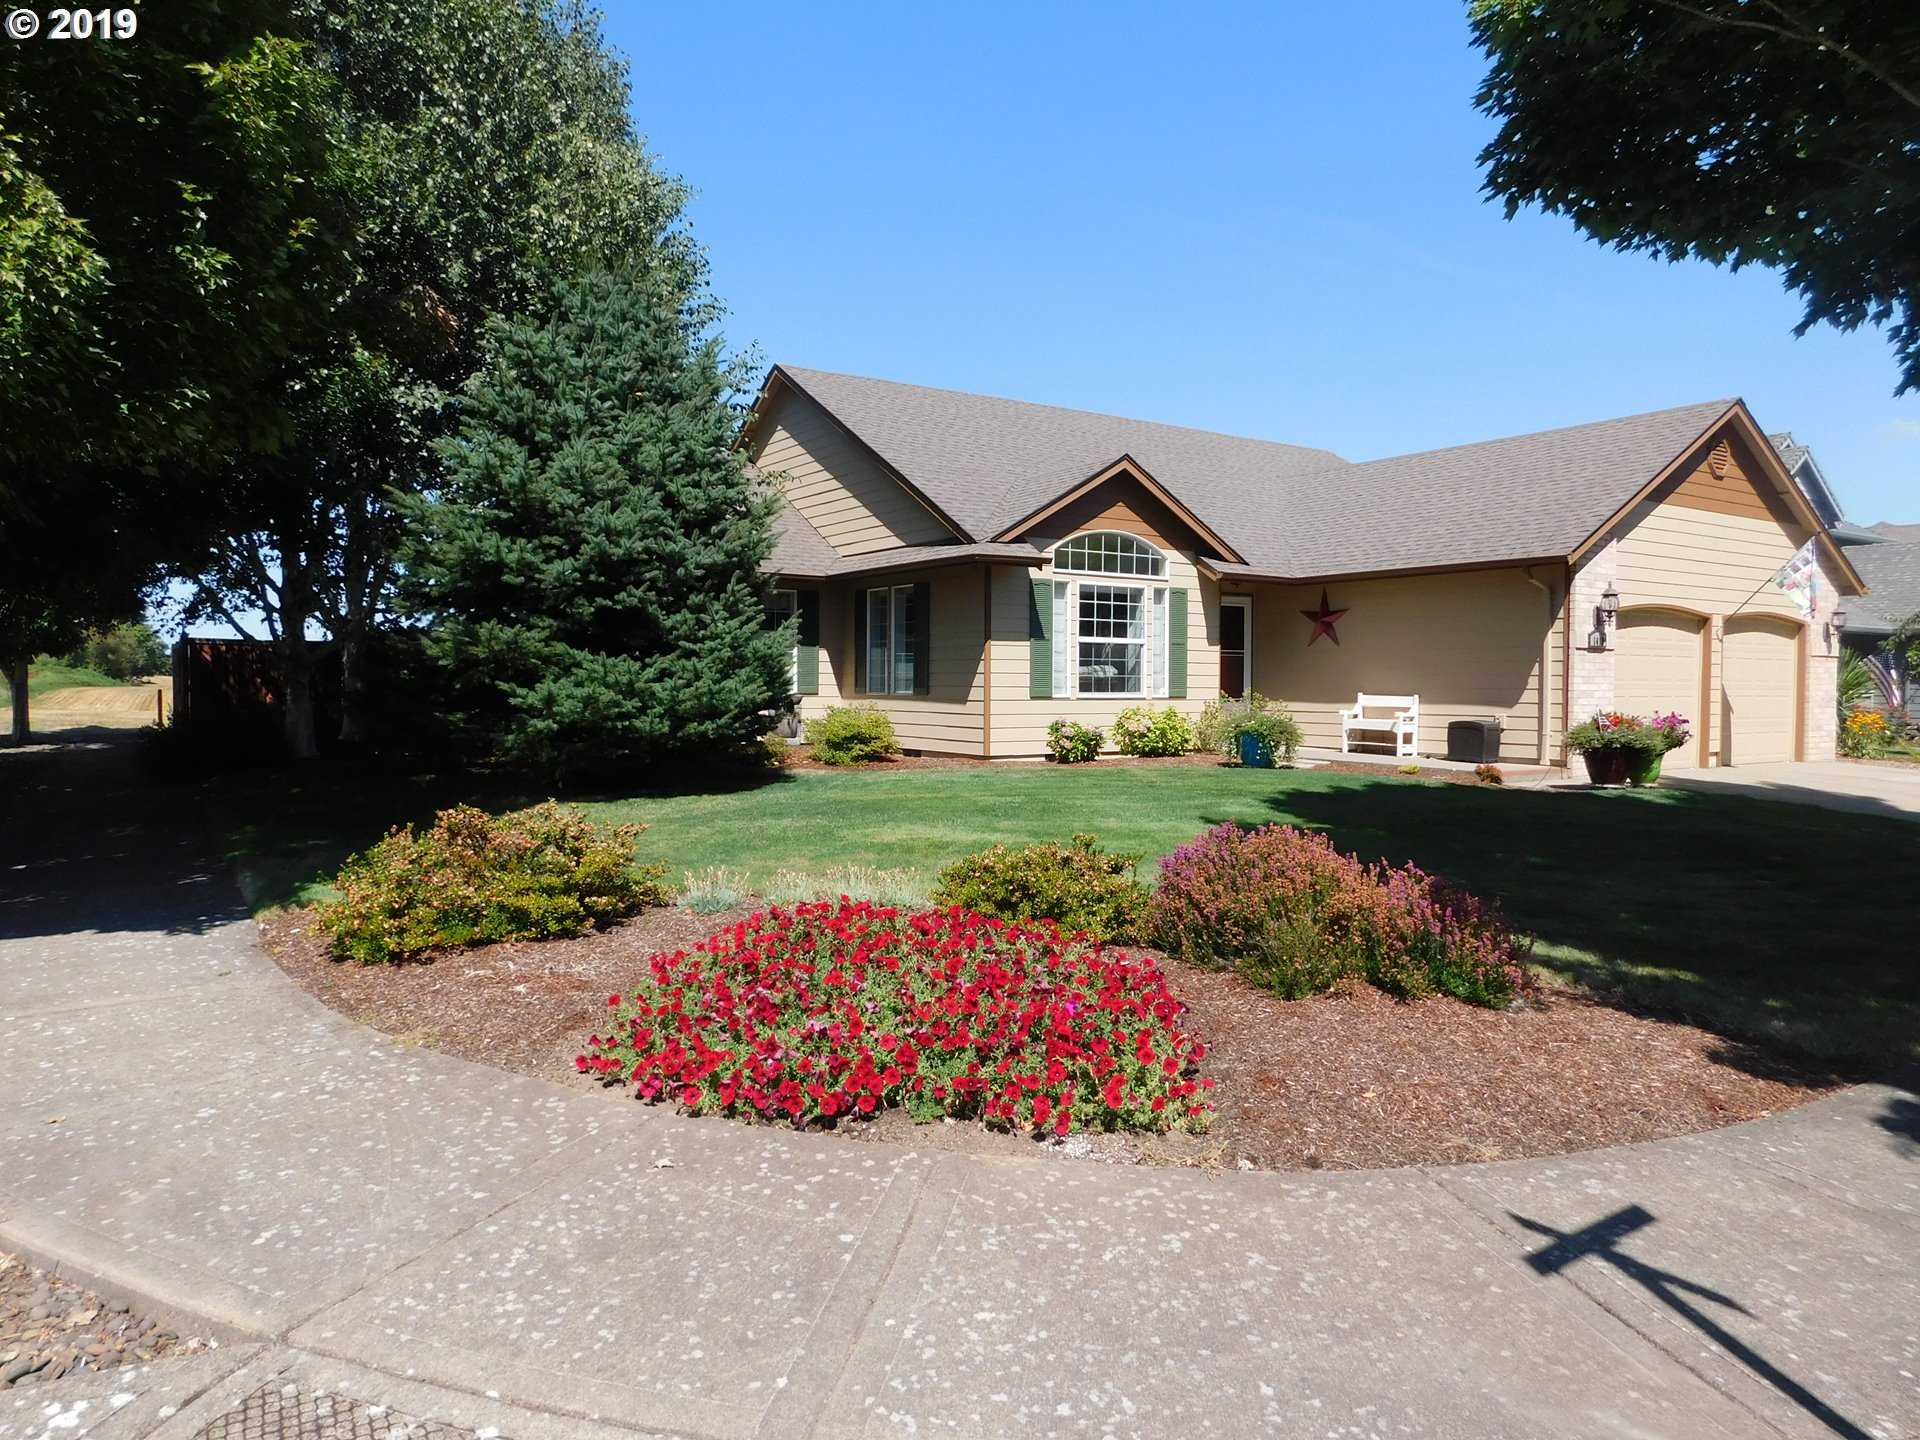 $369,000 - 3Br/2Ba -  for Sale in 1mcregdhvn, Mcminnville